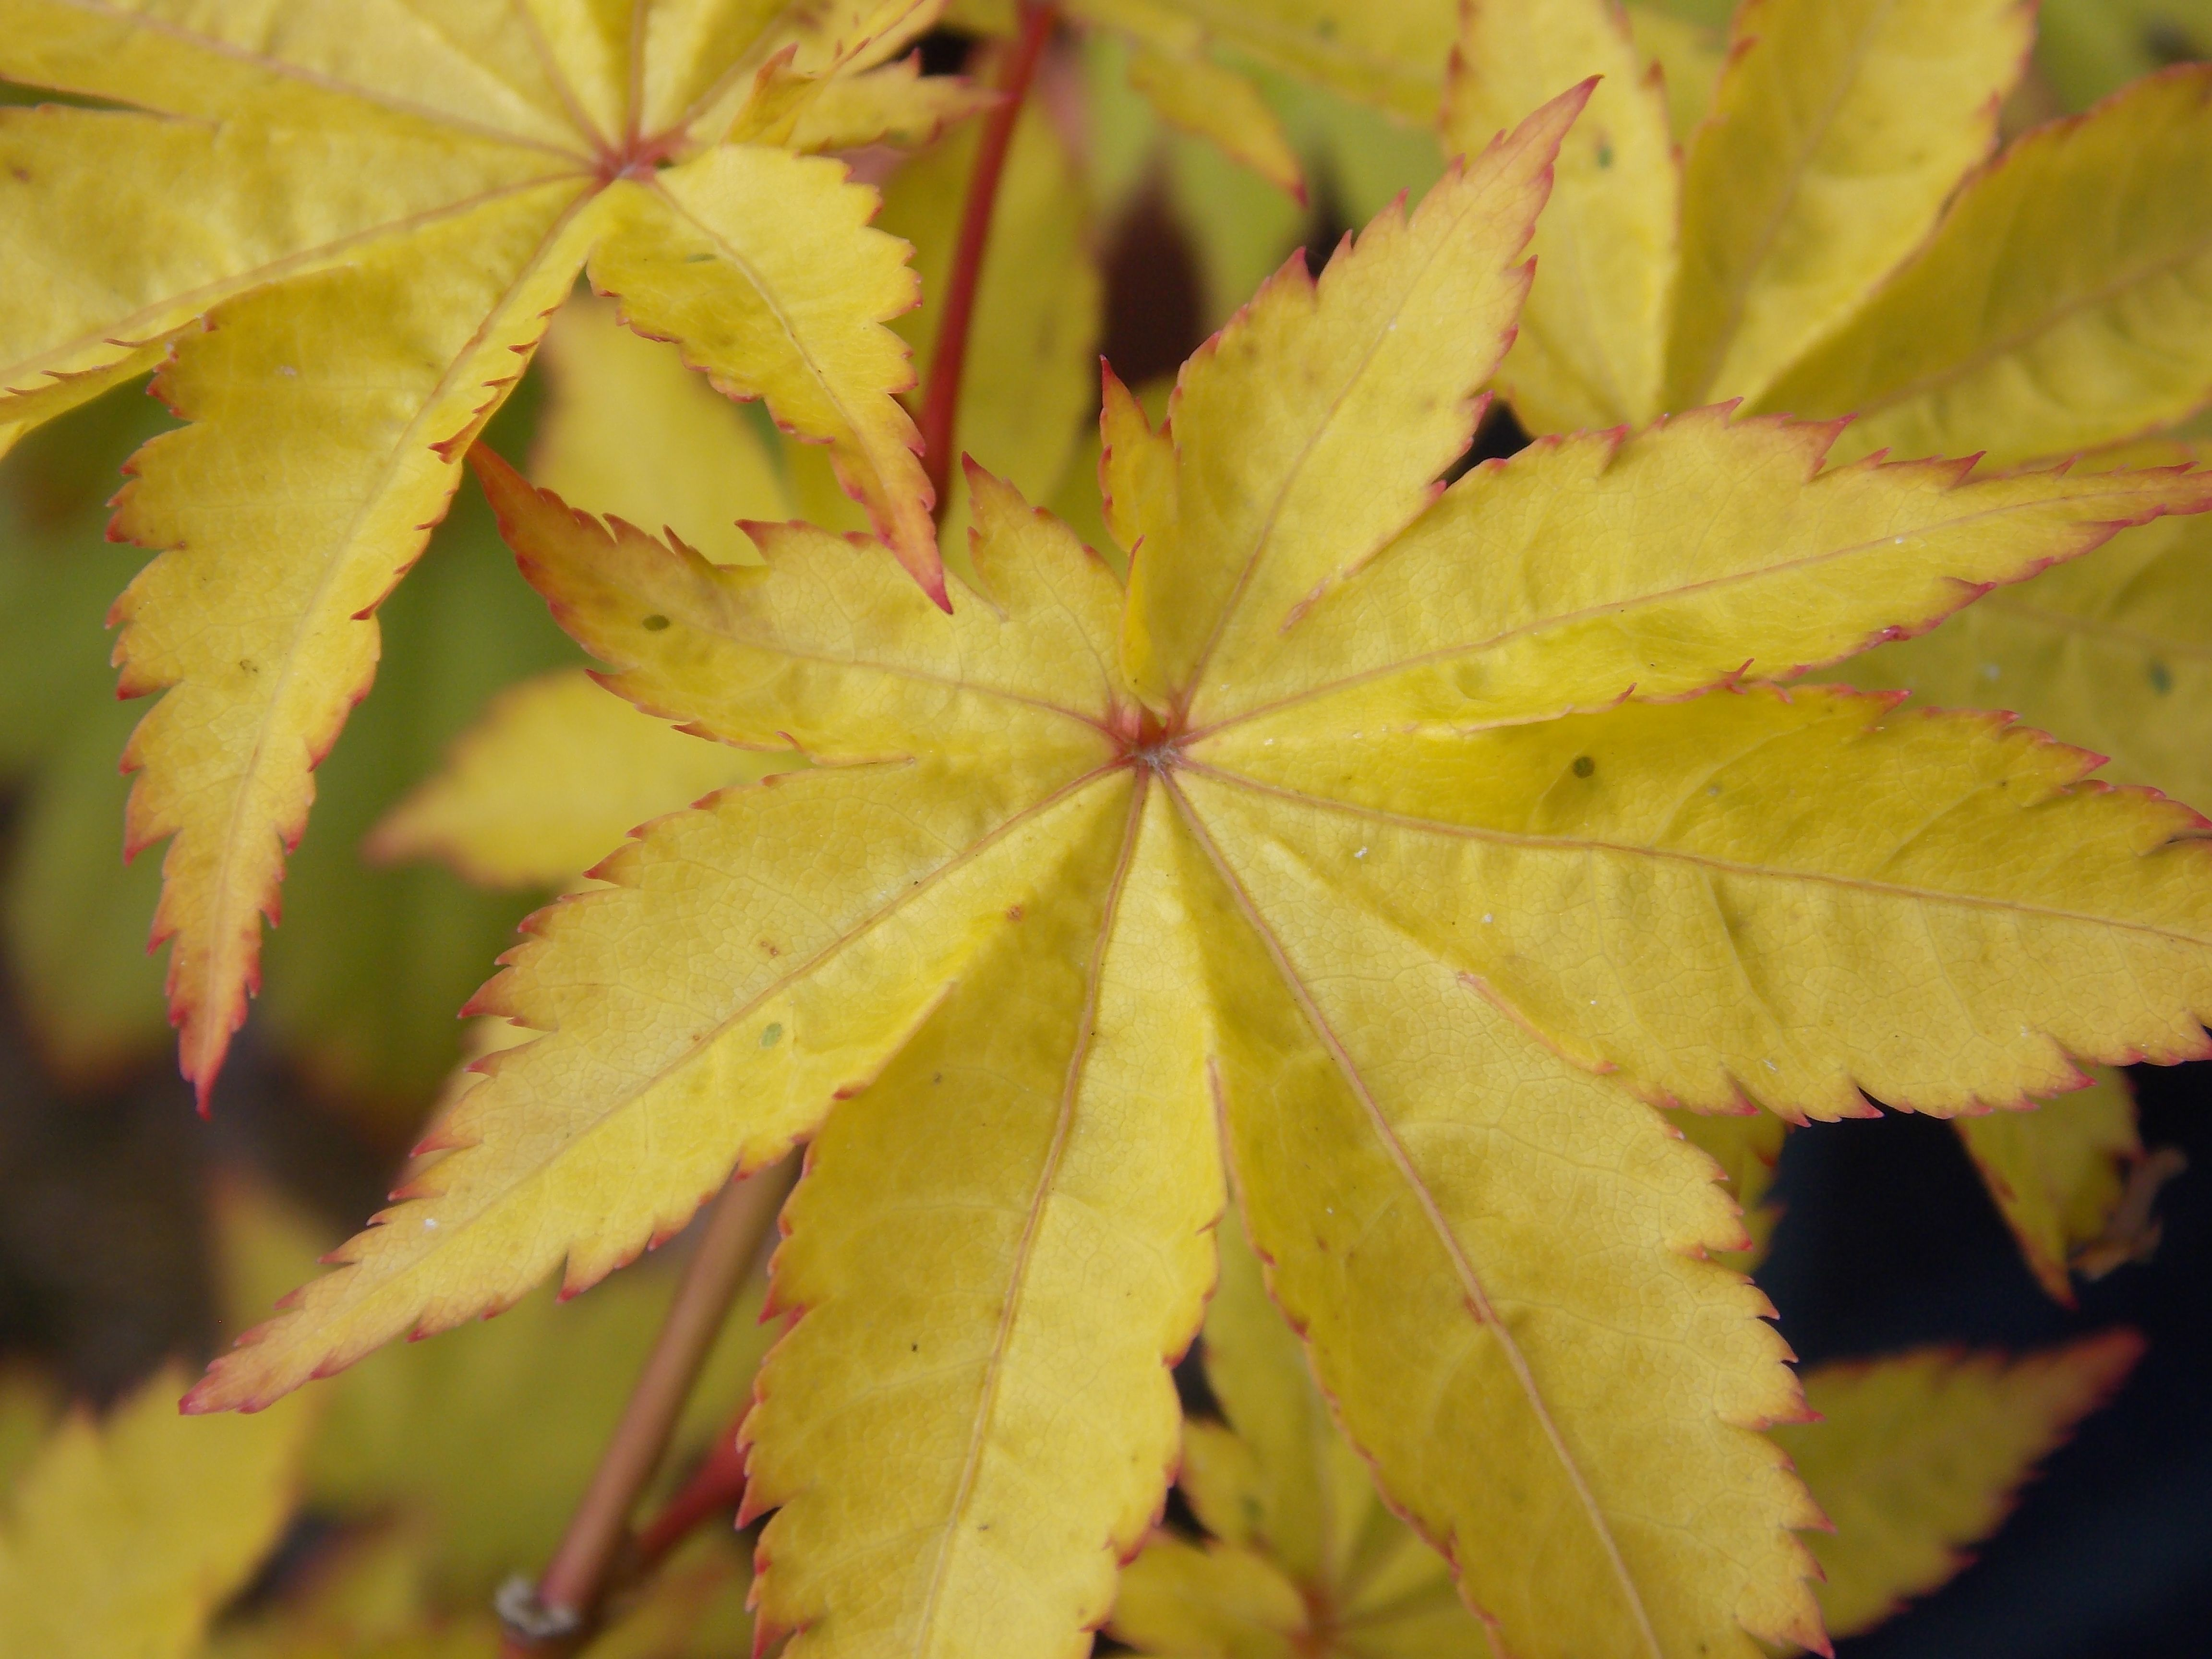 The yellow leaves from the Japanese Maple Acer palmatum